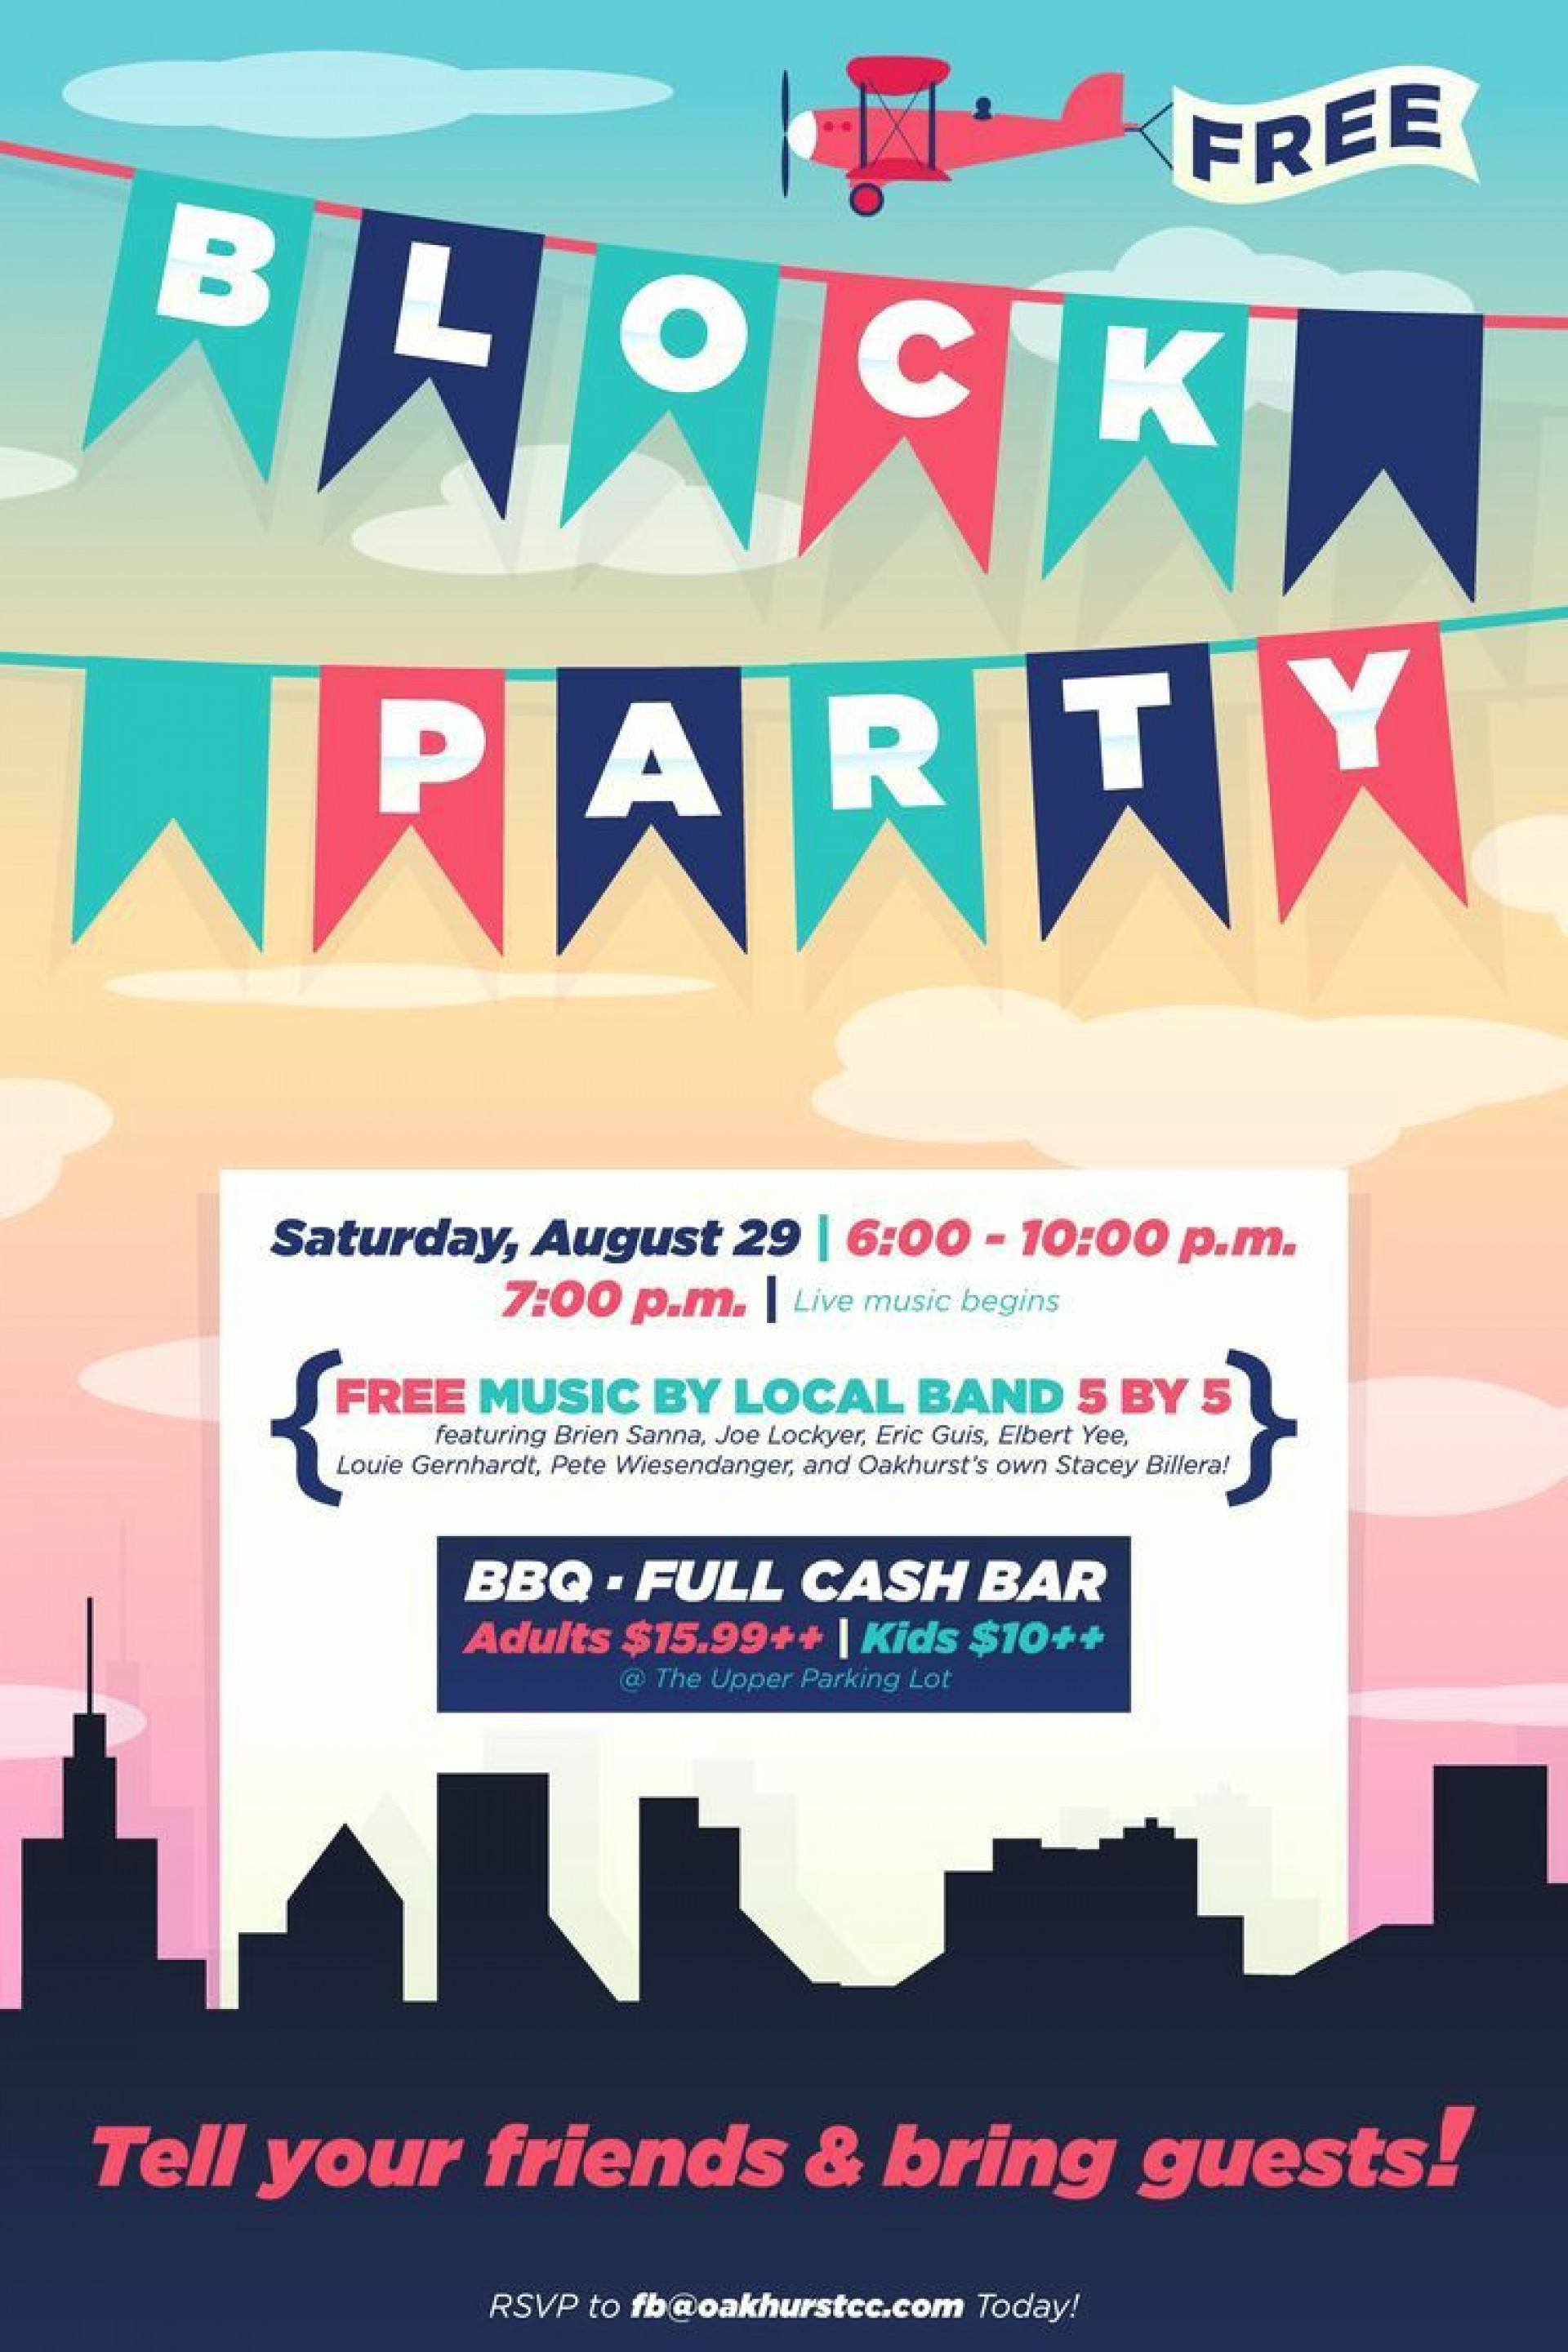 003 Unforgettable Block Party Flyer Template Concept  Templates Free1920